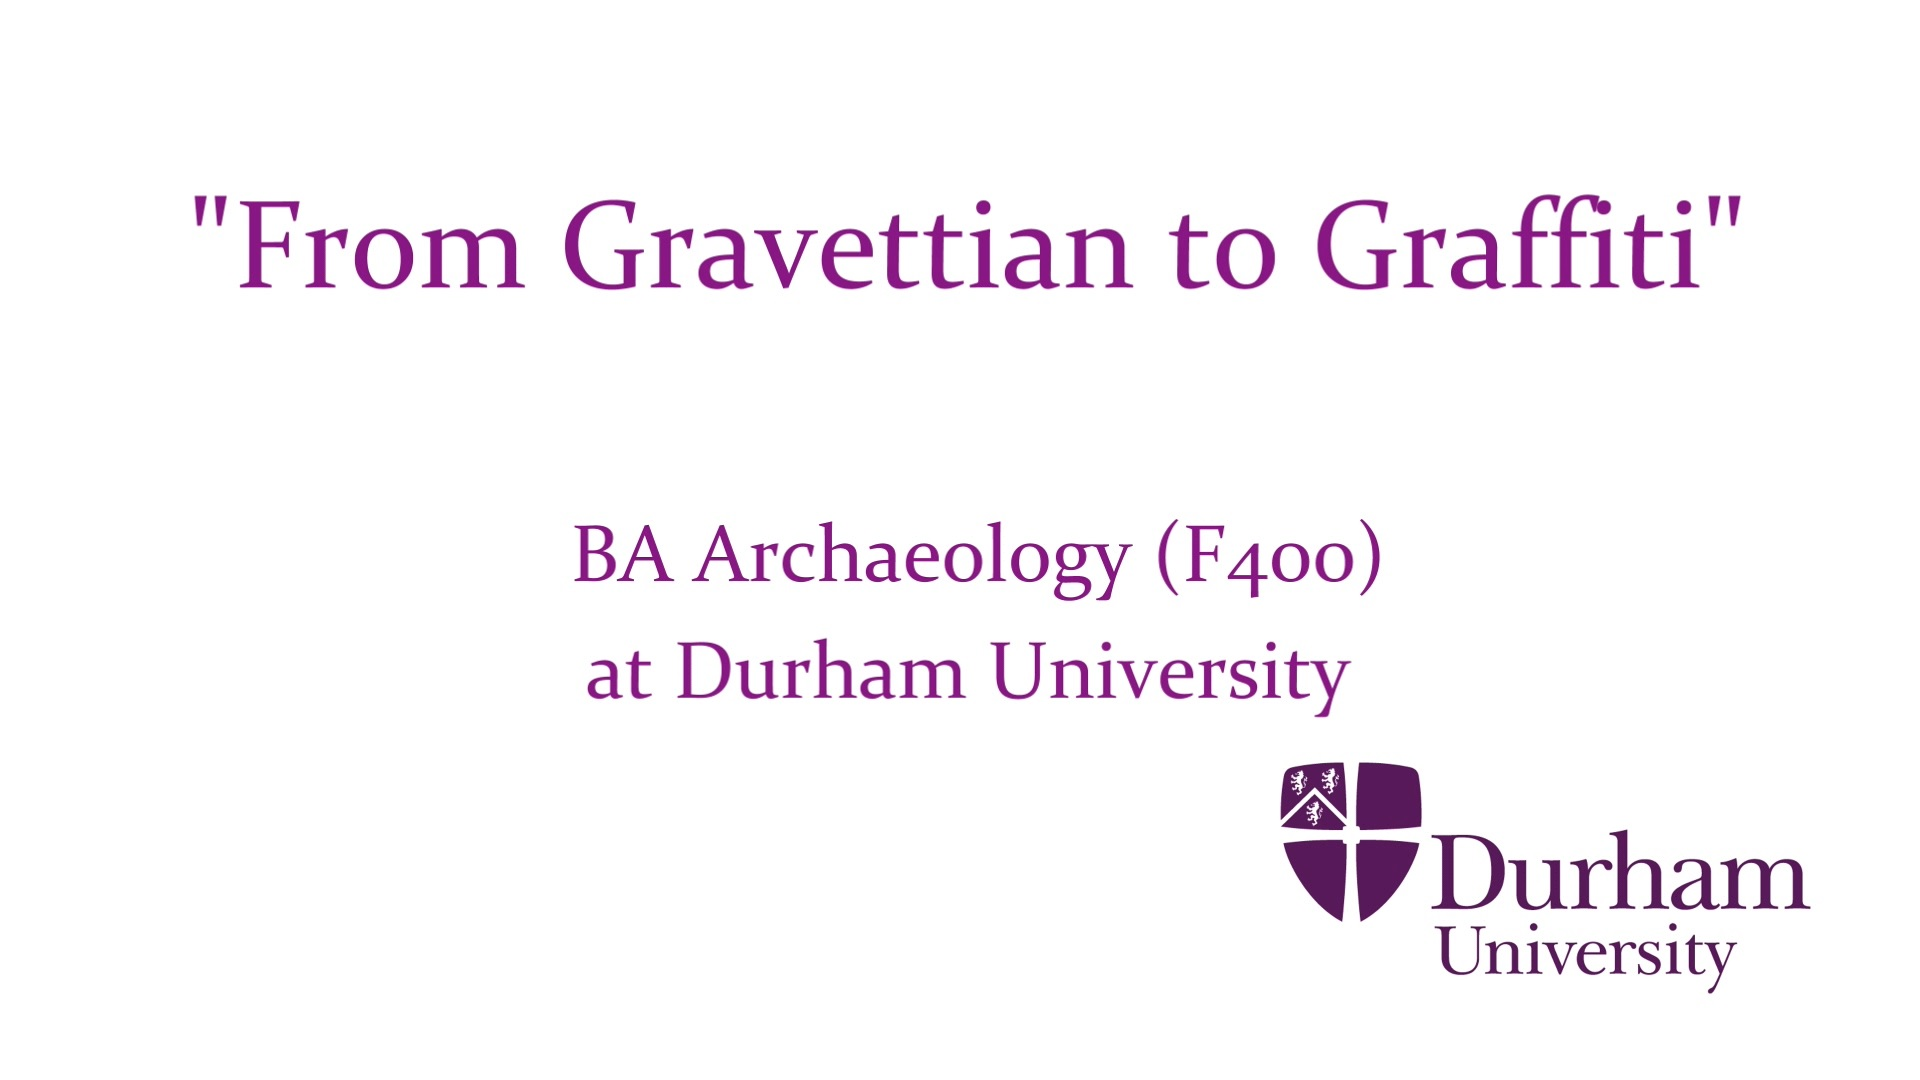 From Gravettian to Graffiti: Undergraduate Archaeology at Durham University